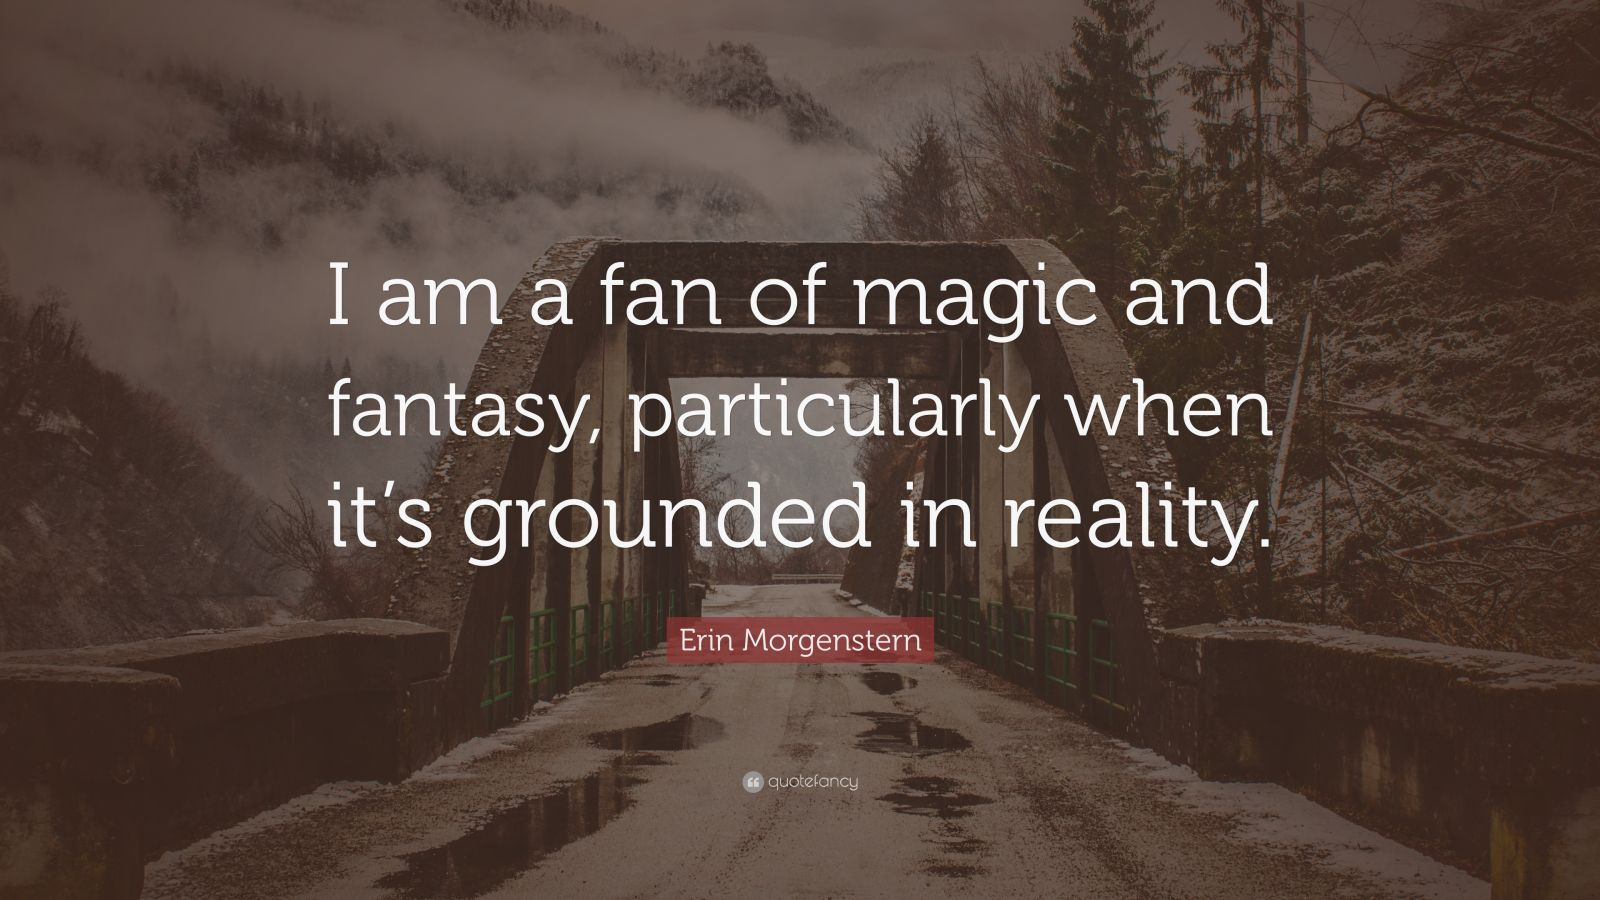 """Erin Morgenstern Quote: """"I am a fan of magic and fantasy, particularly when it's grounded in reality."""""""